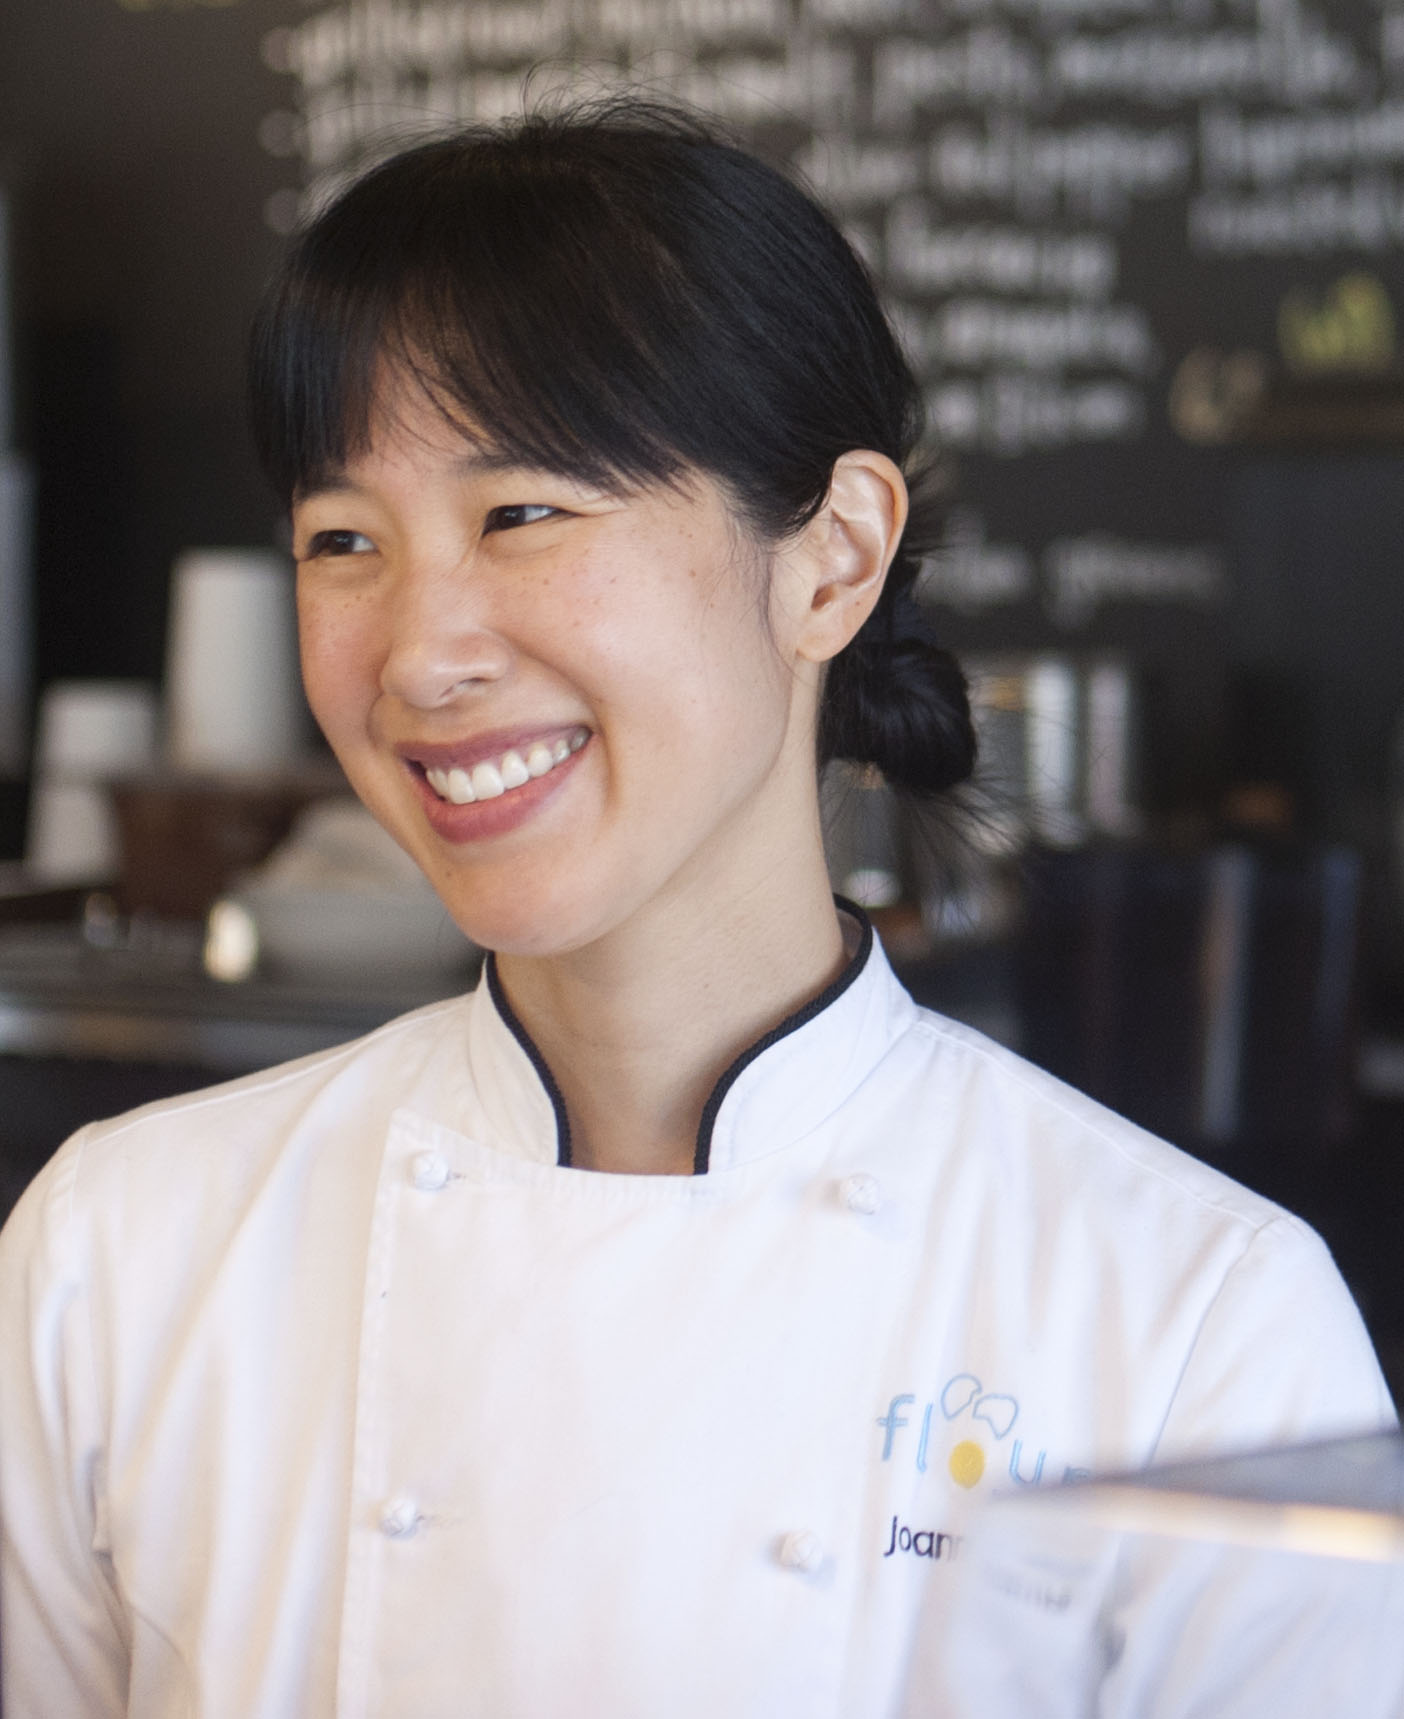 Joanne-Chang_Flour-too - Joanne-Chang_Flour-too